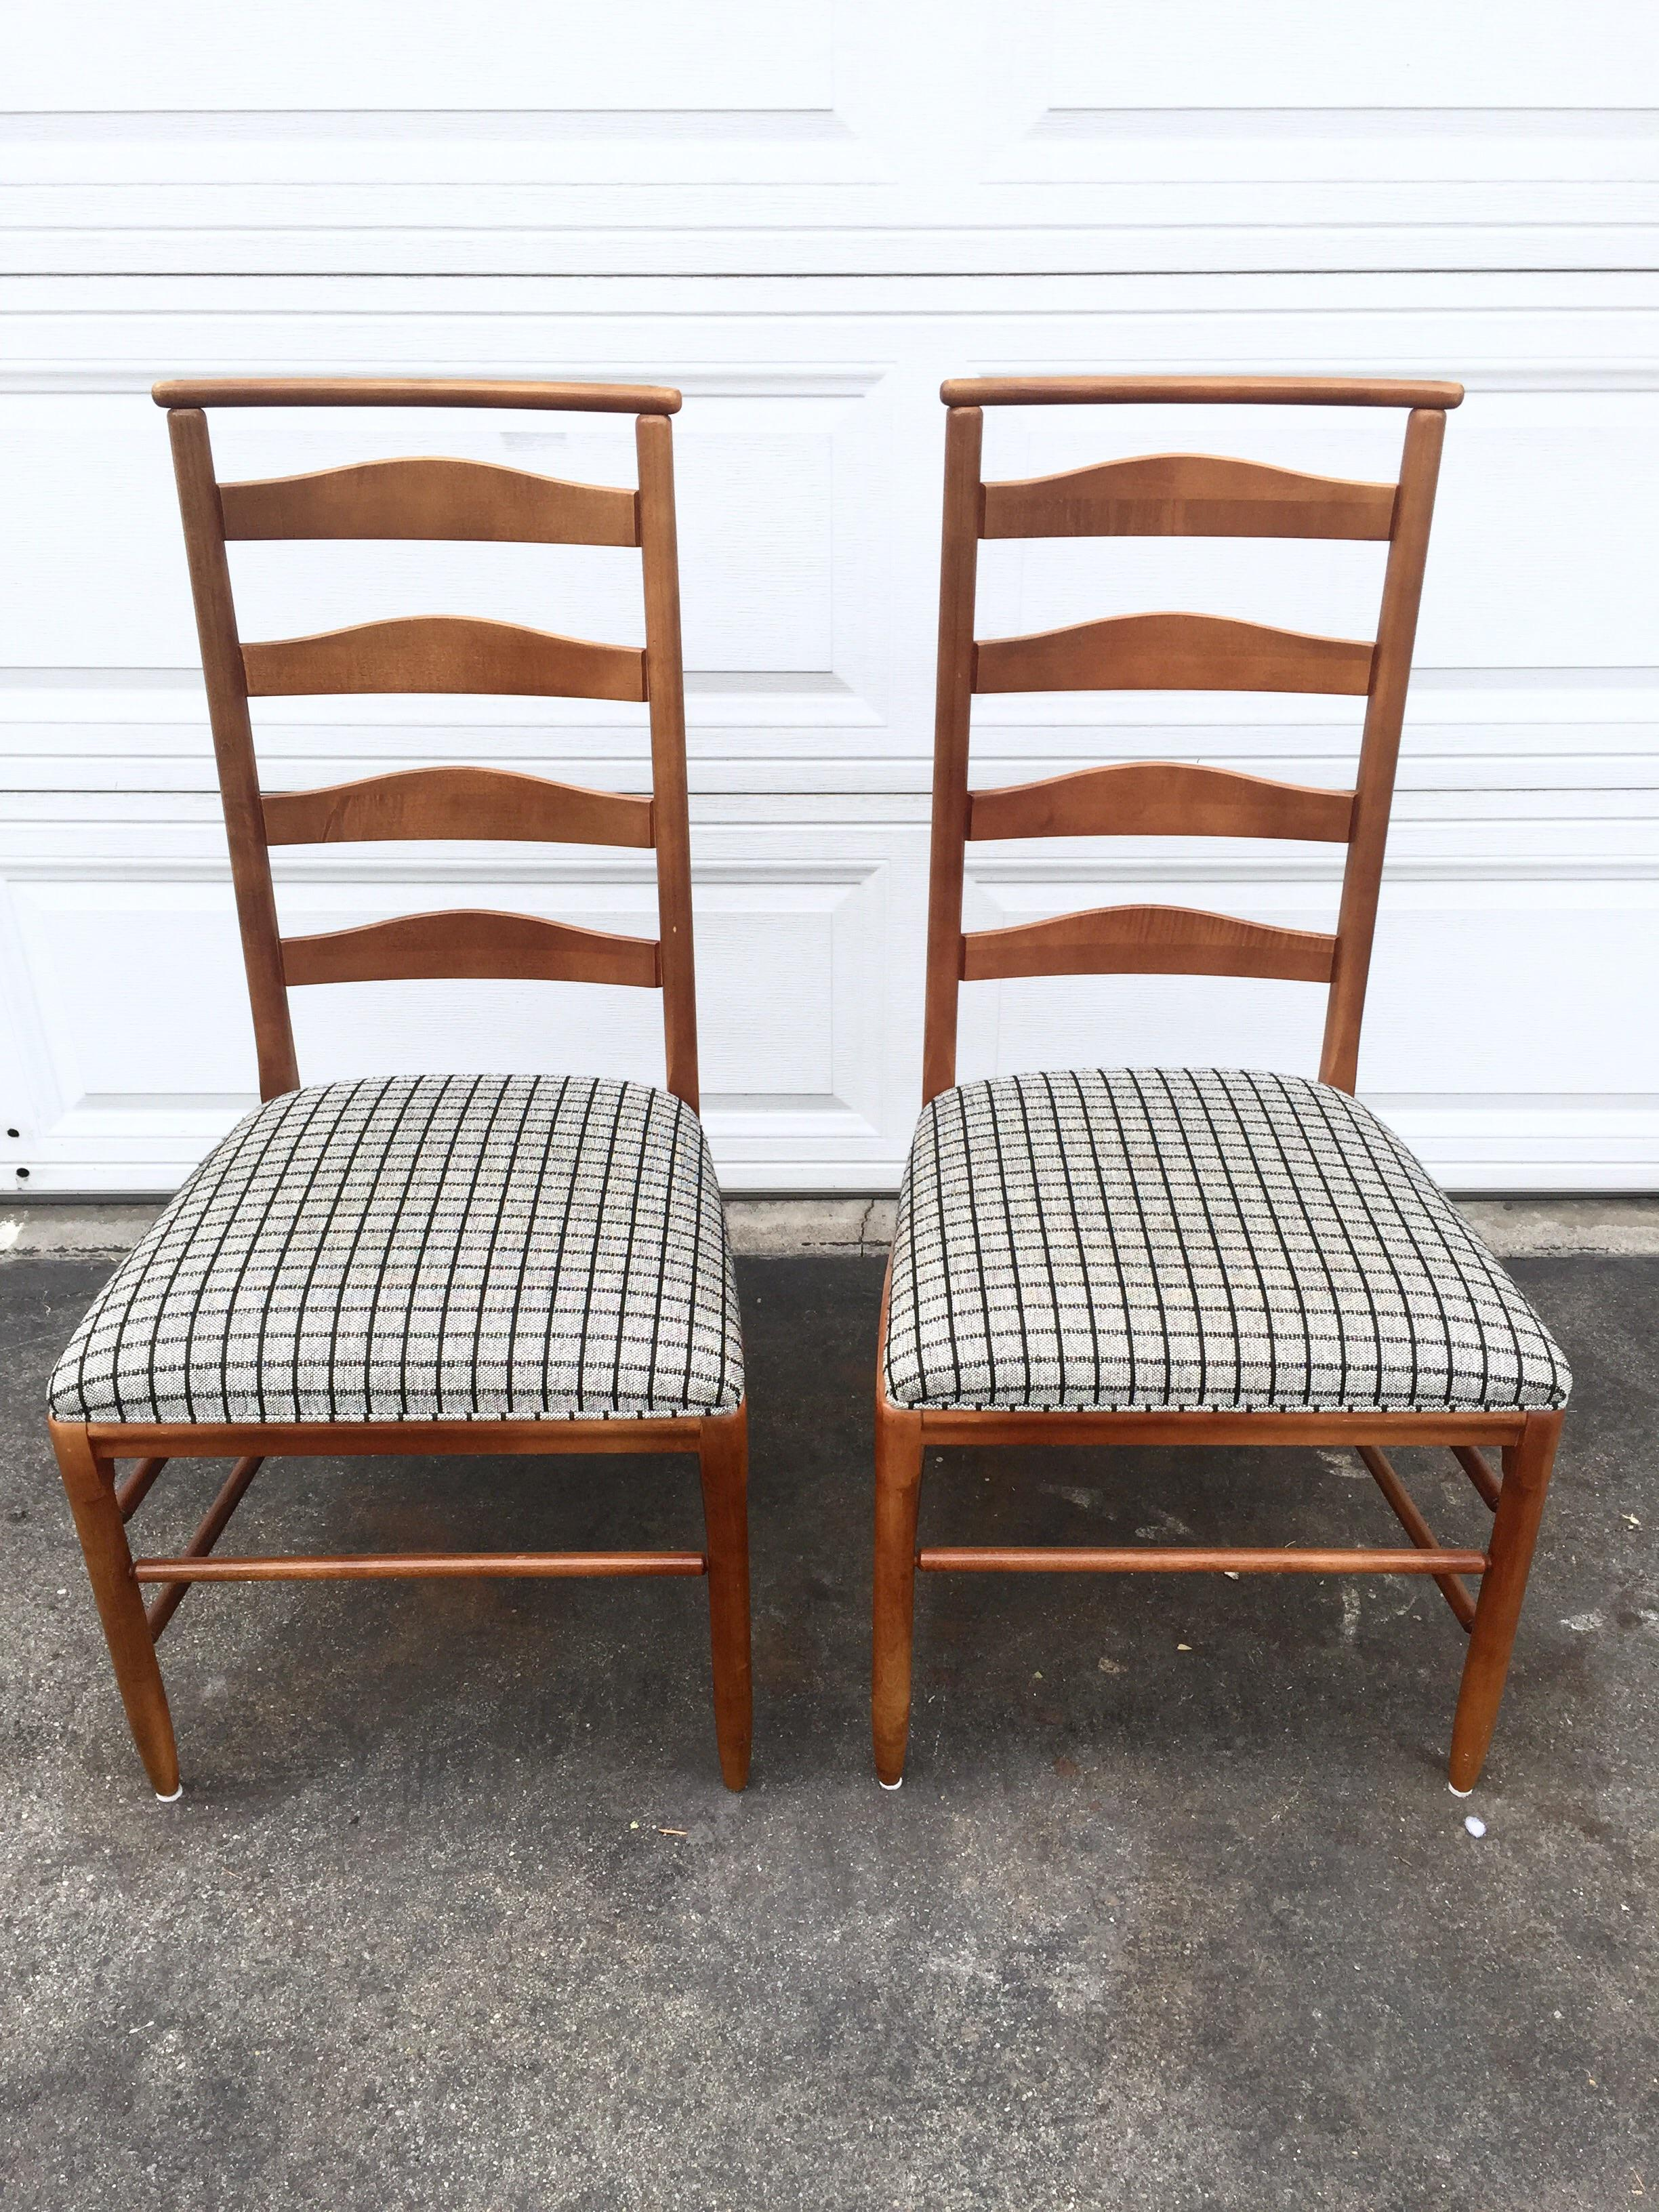 Vintage Nichols U0026 Stone Ladder Back Chairs   A Pair   Image 2 ...